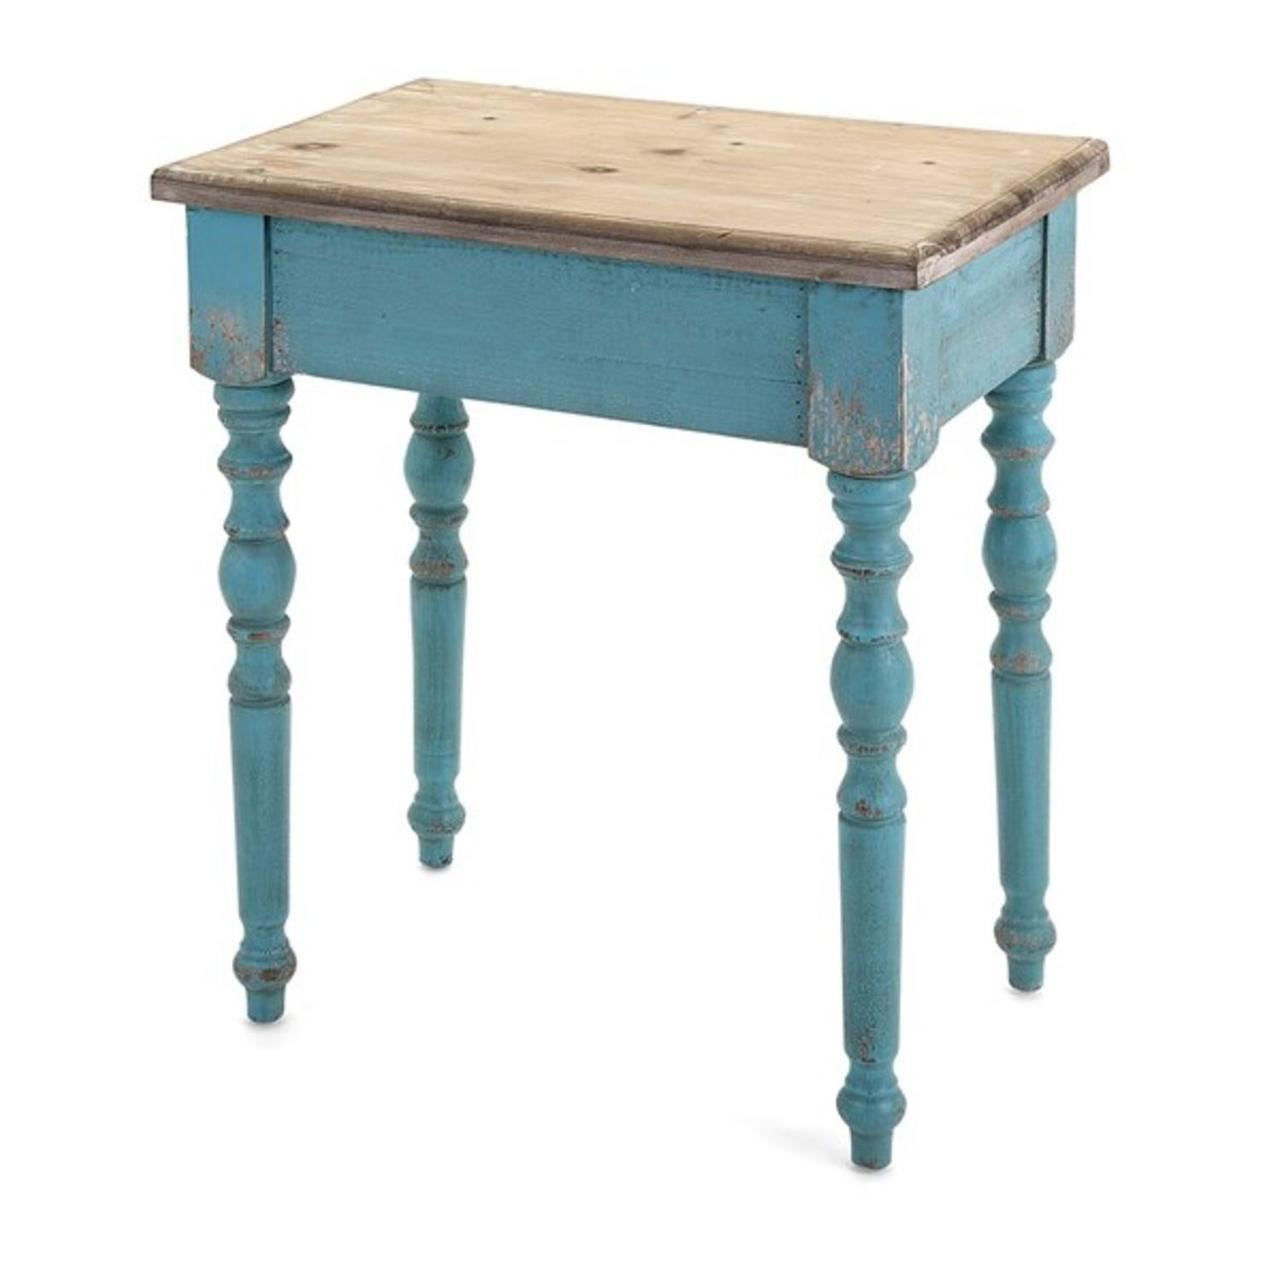 dark aqua blue light sandy brown distressed fir decorative accent table and console with shelves antique claw foot coffee eugene walnut large outdoor cover inch furniture legs